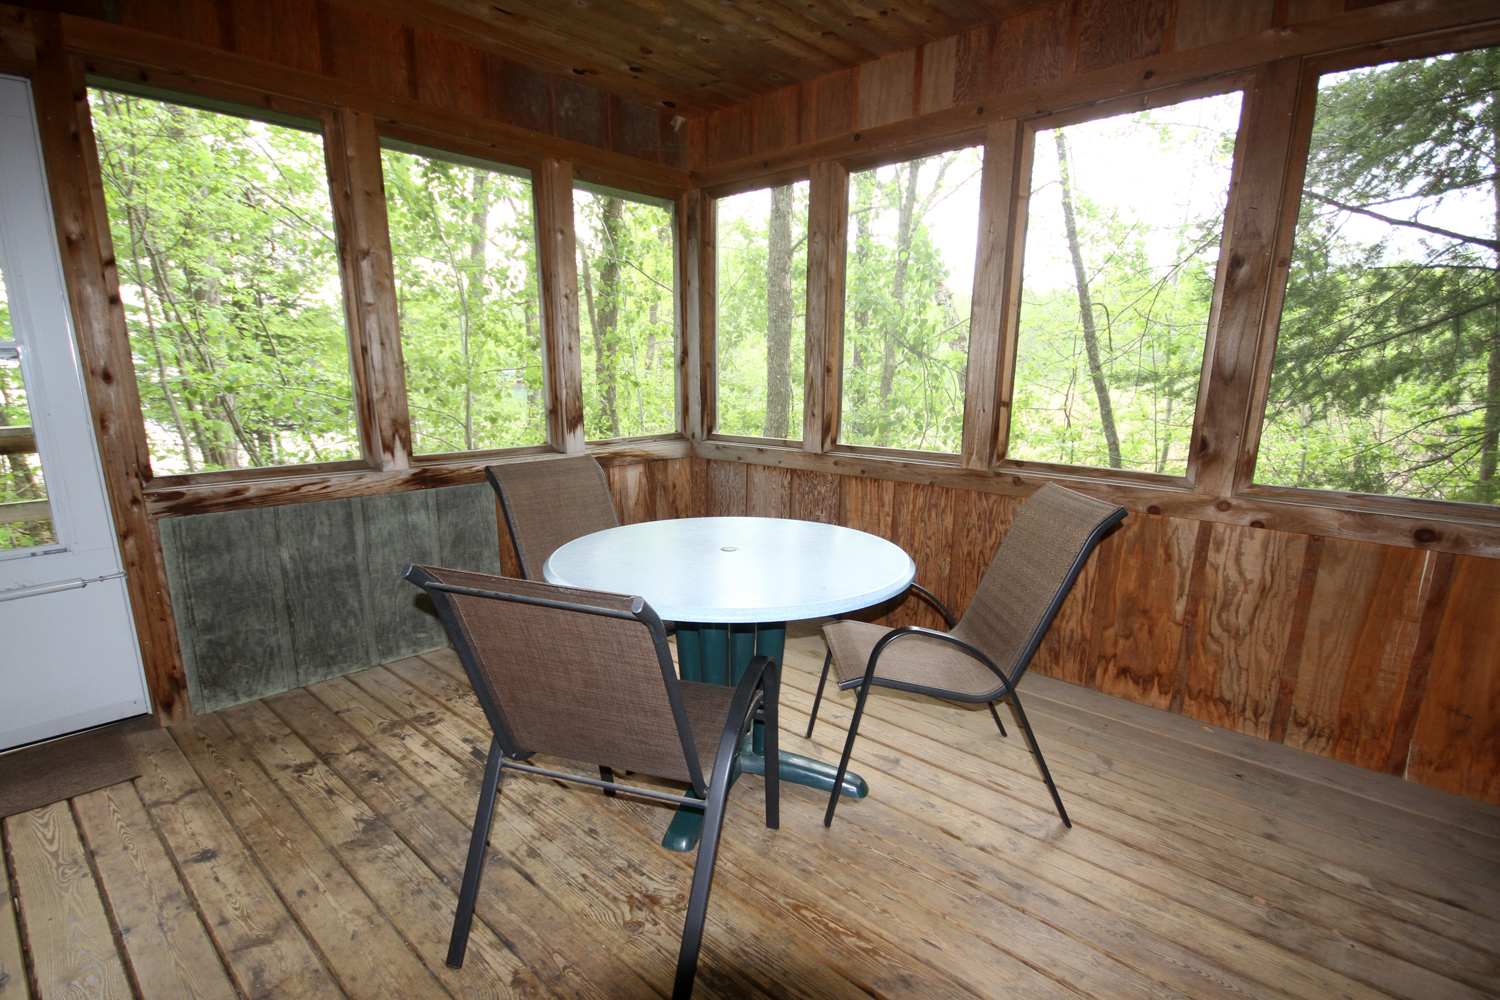 Screen Porch for outdoor dining and games